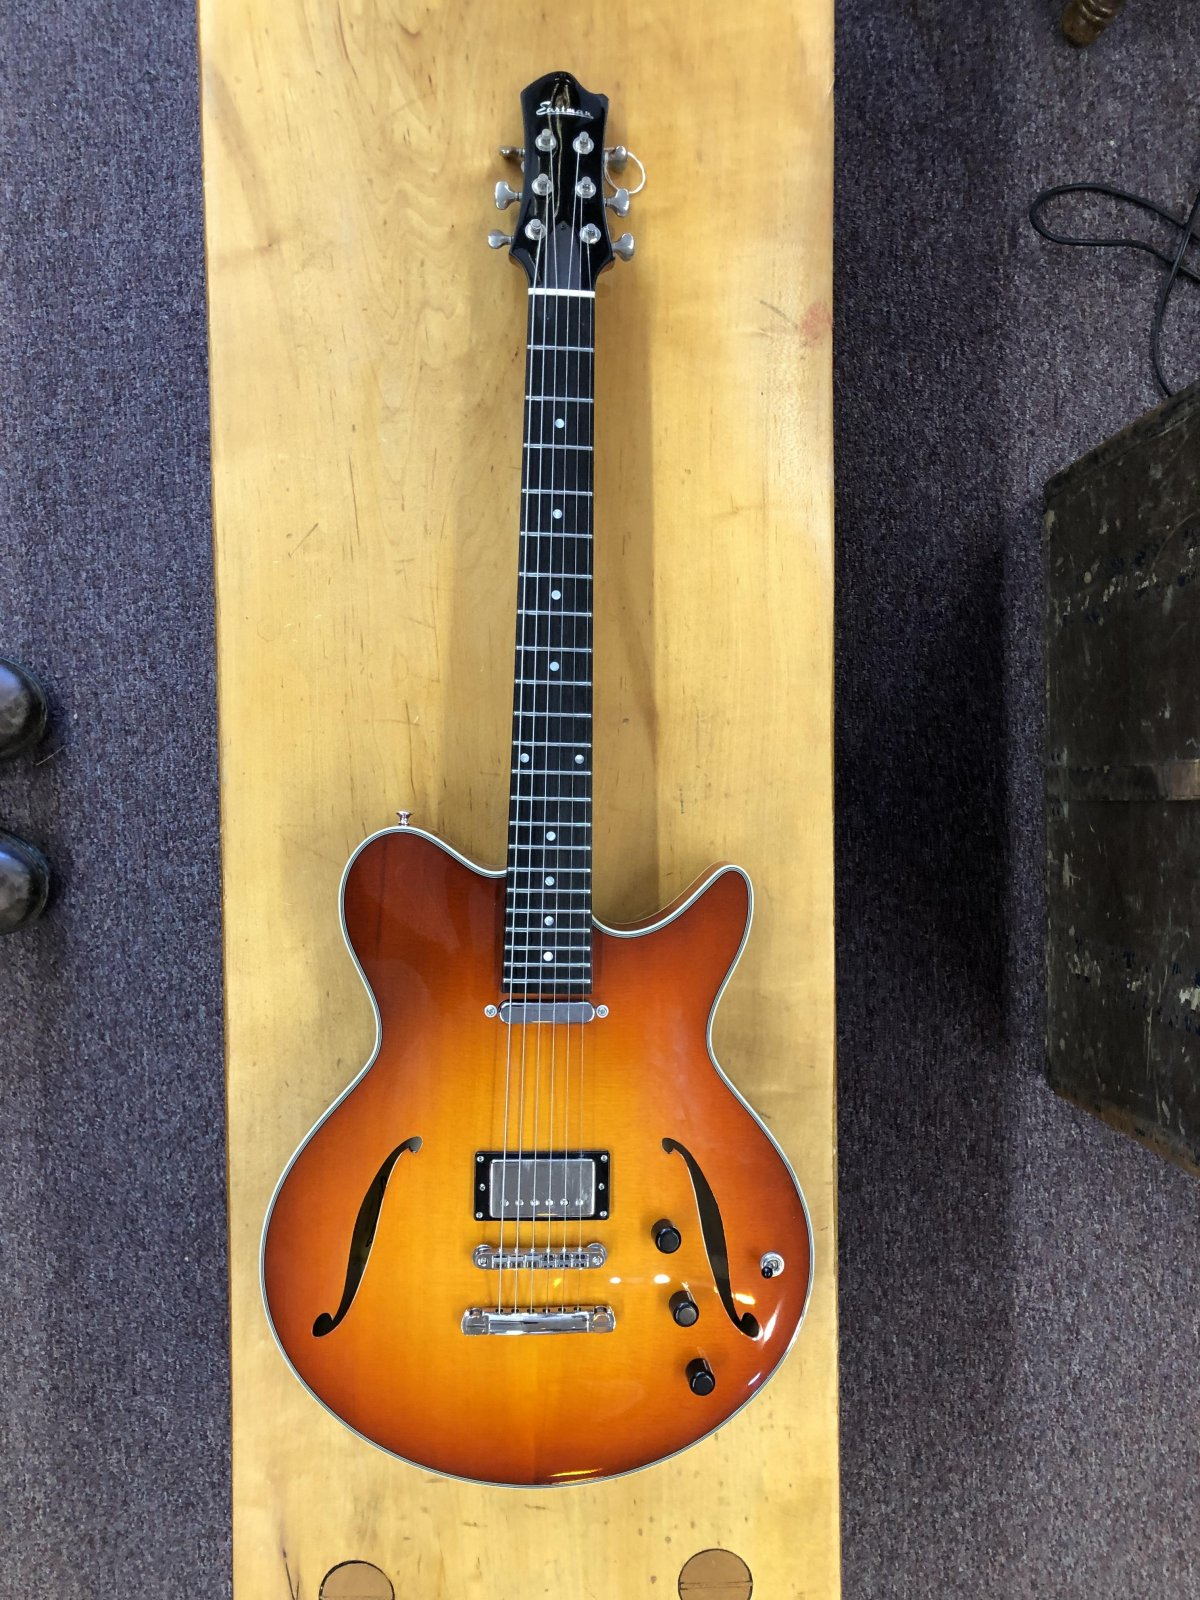 Romeo Thin Archtop Body Electric Guitar (Single Coil)